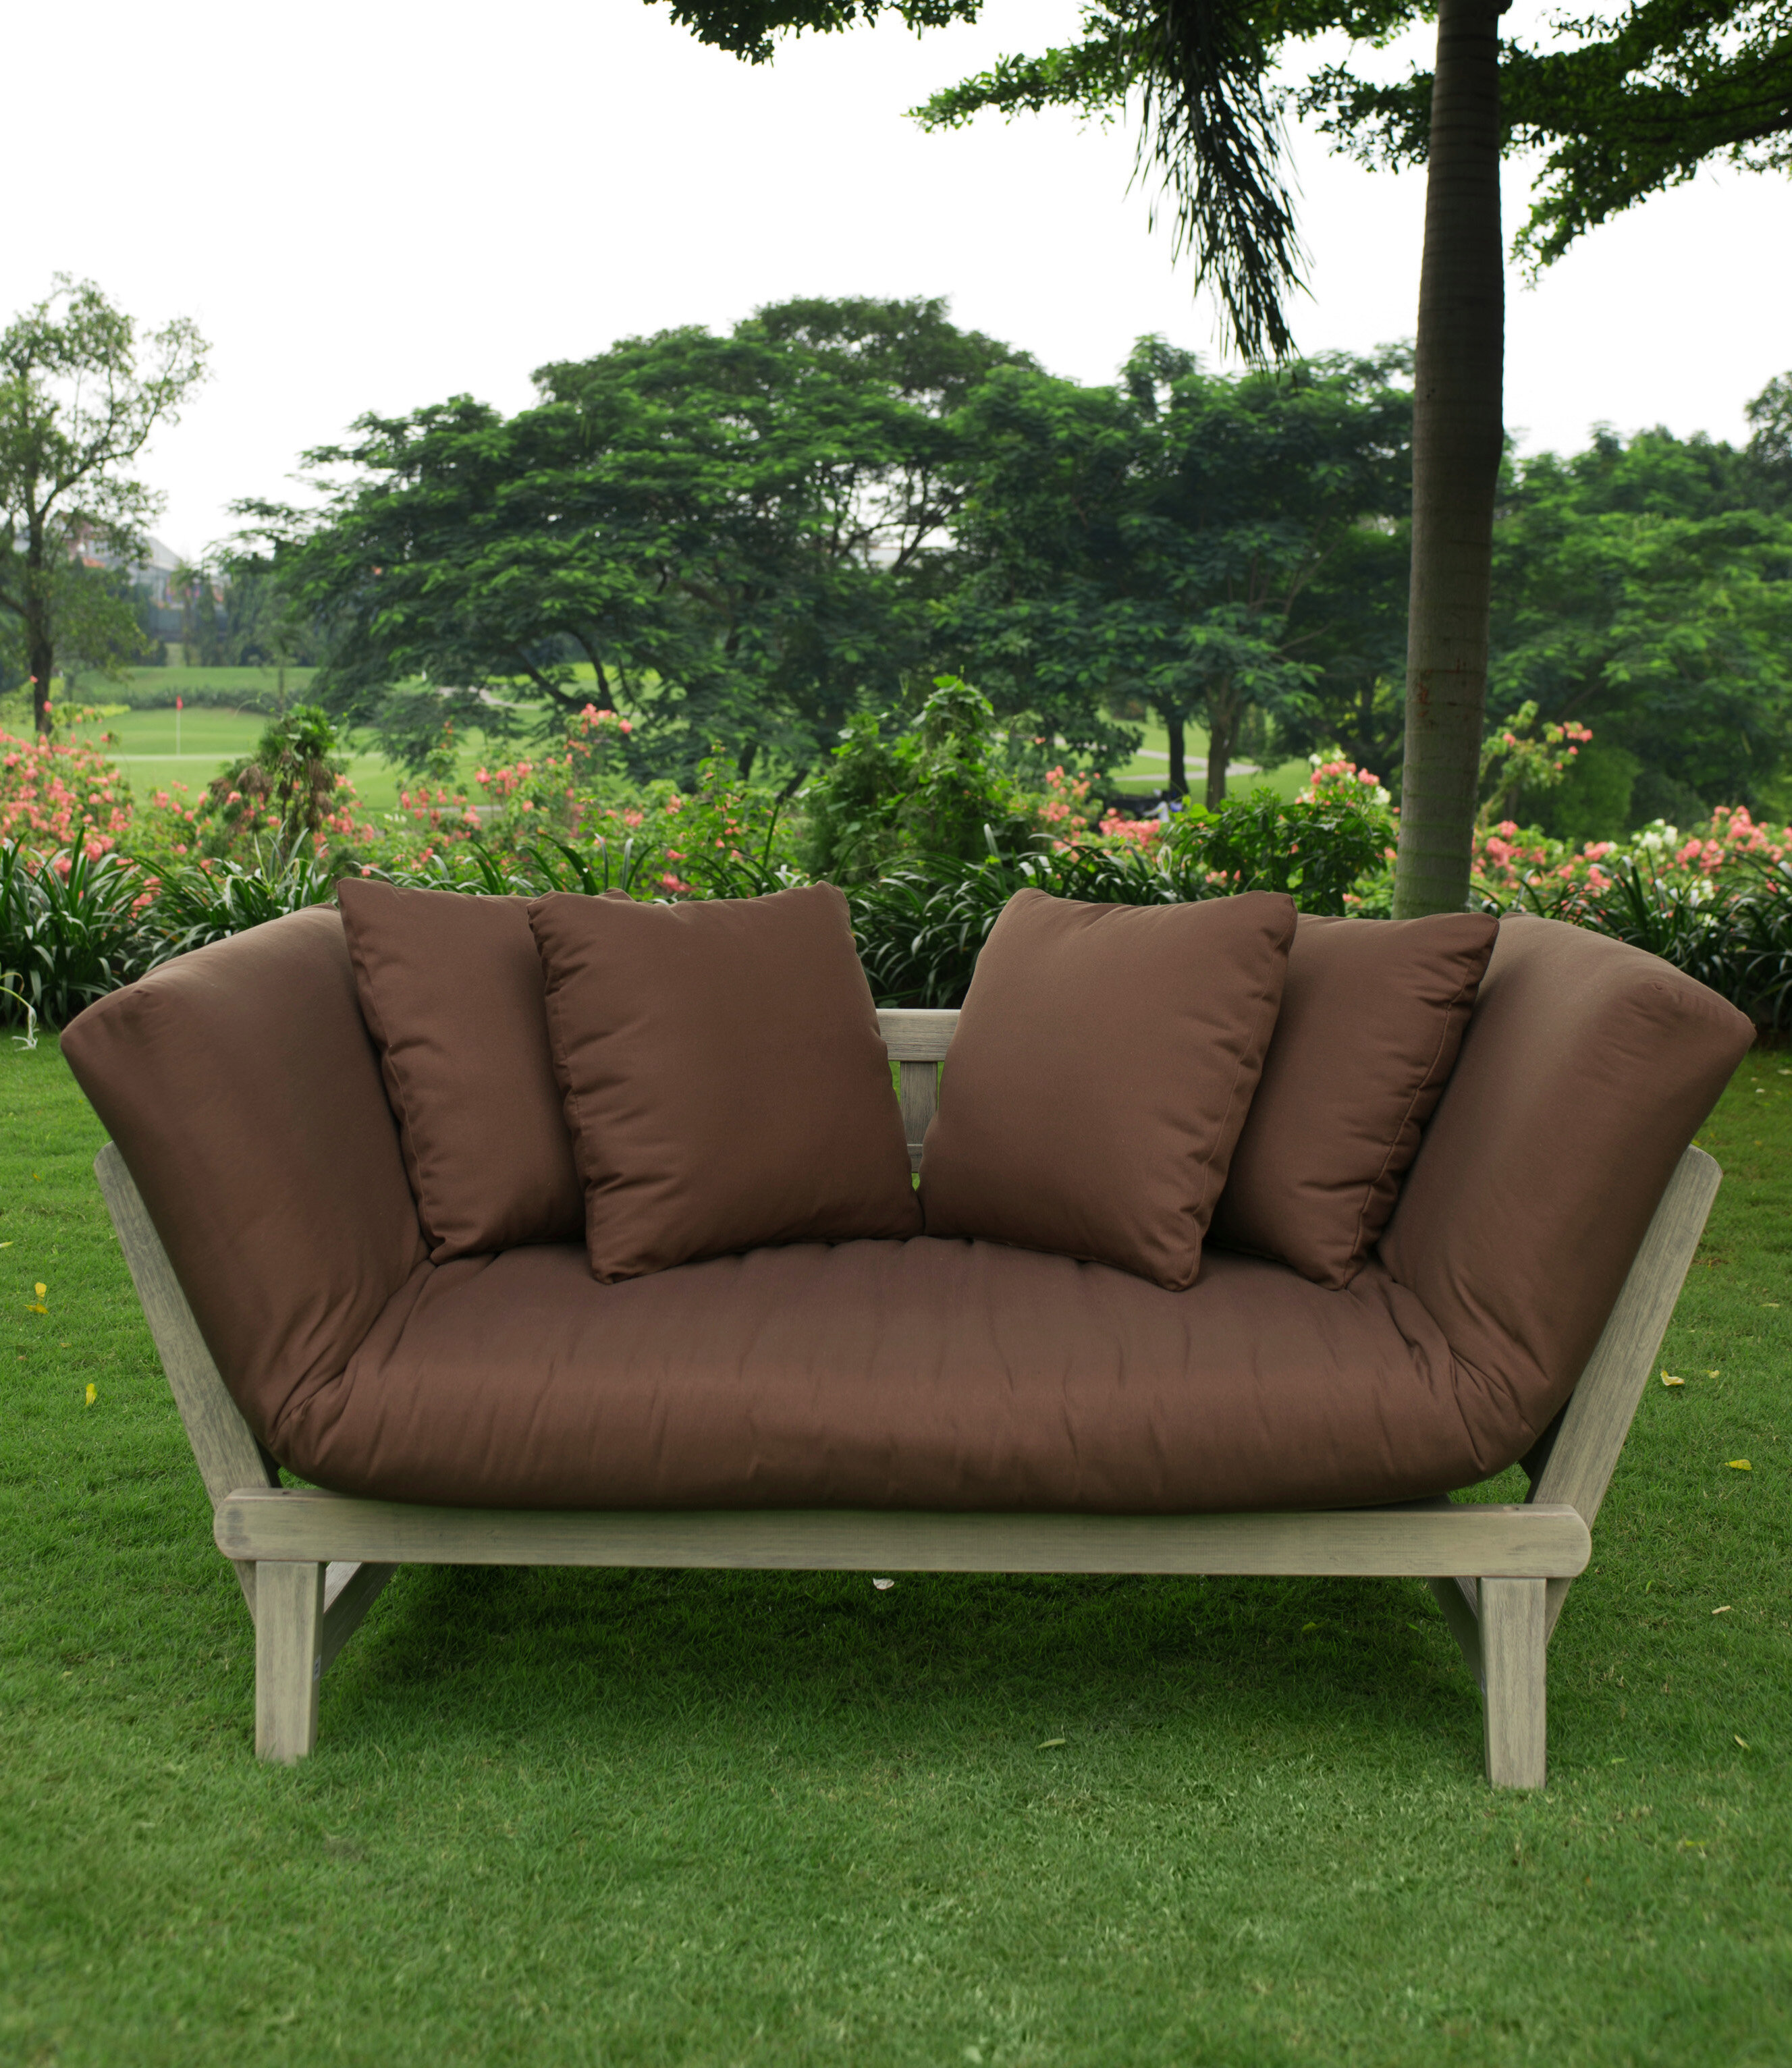 Prime Englewood Loveseat With Cushions Reviews Joss Main Beutiful Home Inspiration Aditmahrainfo